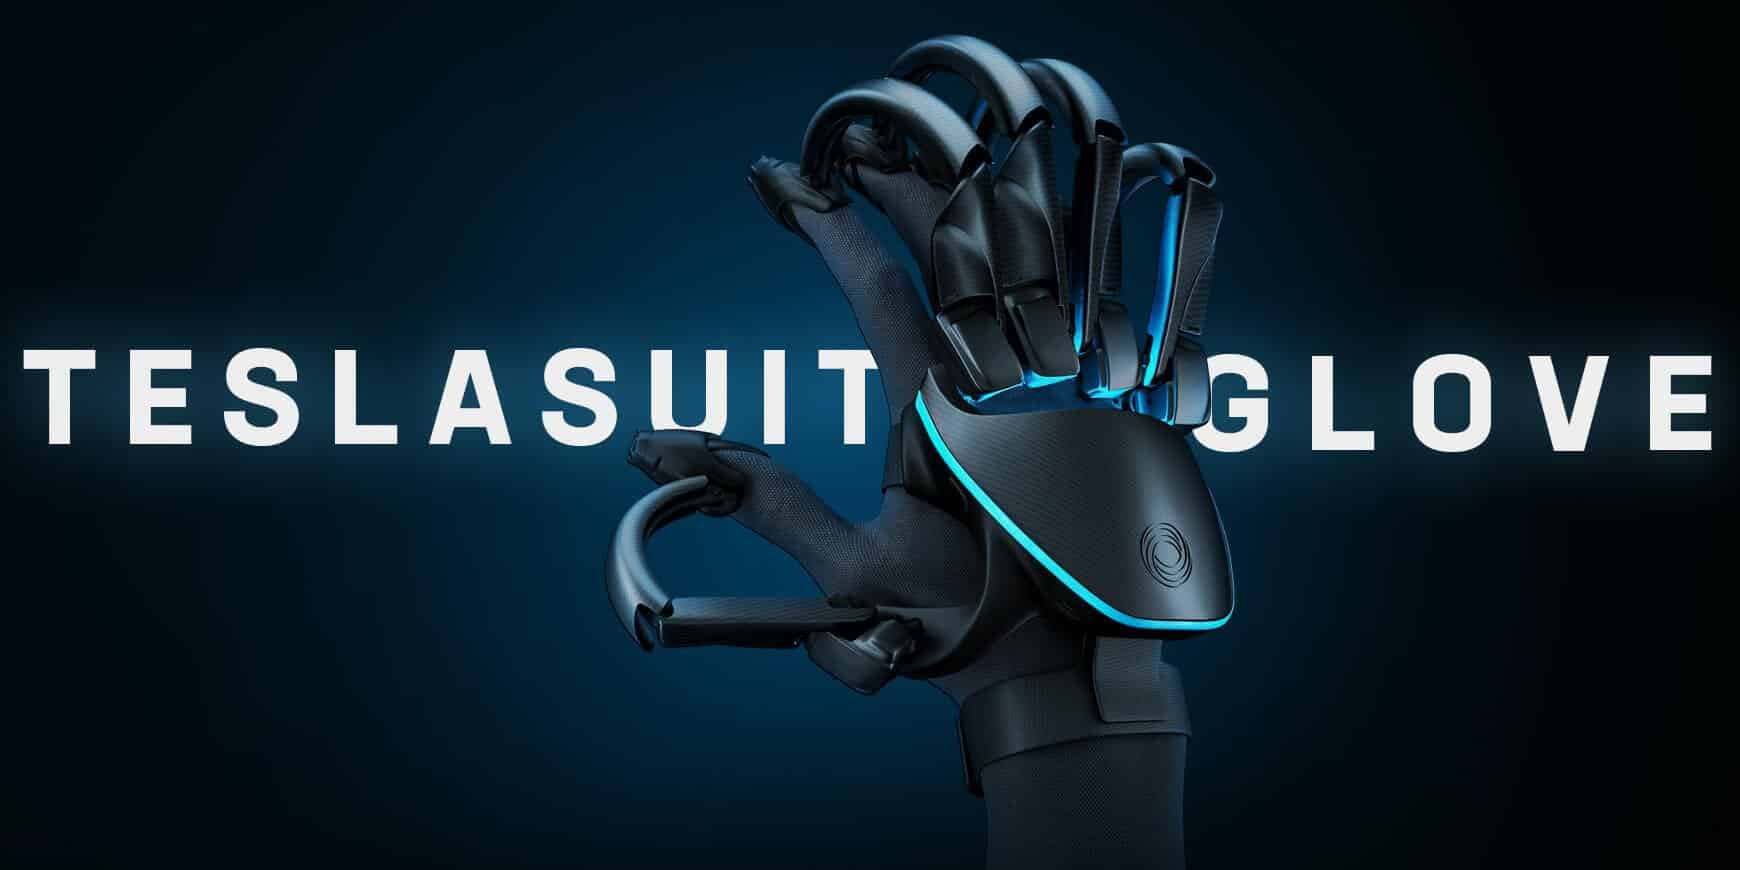 New VR Teslasuit Glove Simulates Real Touch Sense Feedback